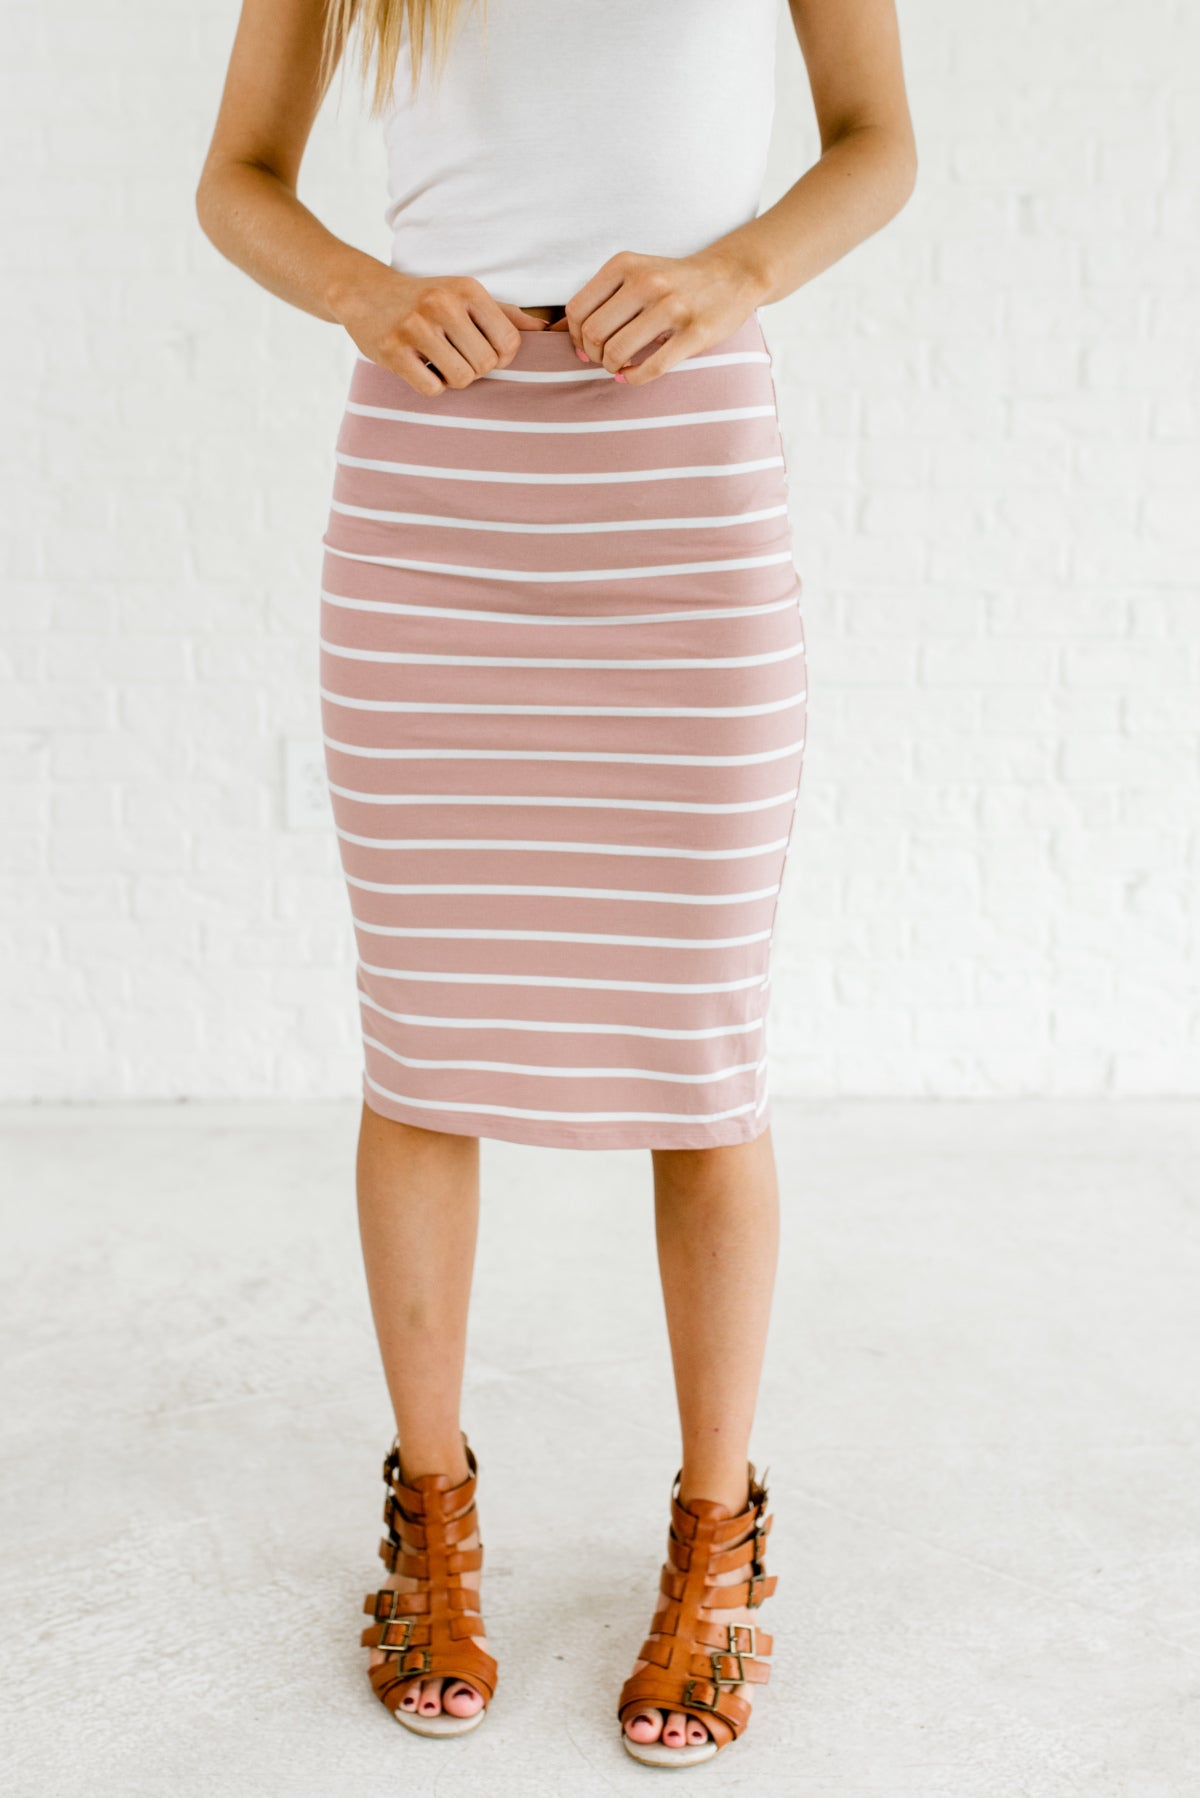 886c8ae47f Light Mauve Pink and White Striped Boutique Knee-Length Skirts for Women